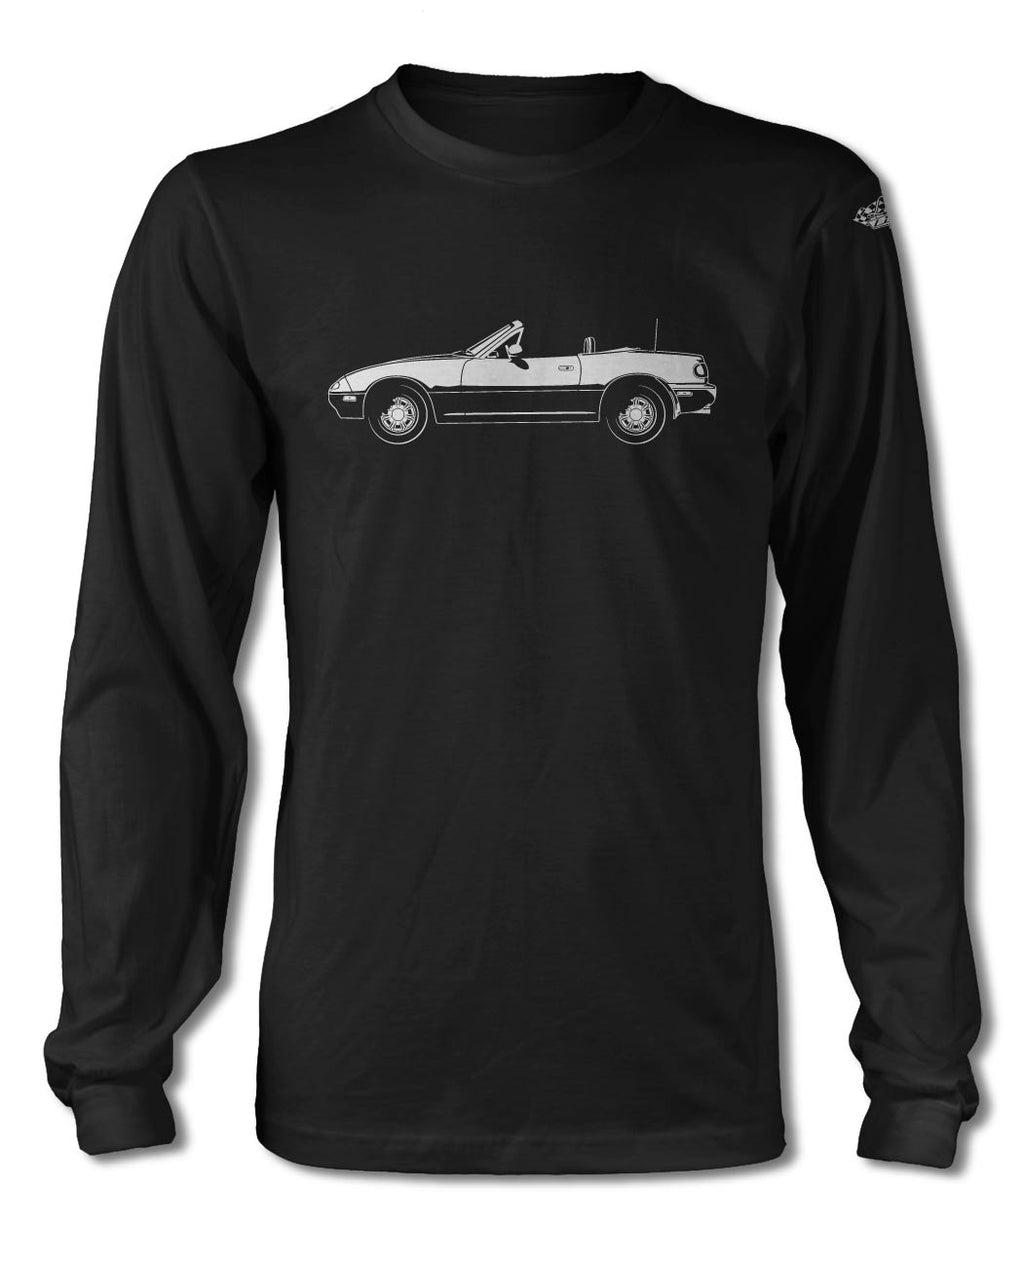 Mazda Miata MX-5 Convertible T-Shirt - Long Sleeves - Side View